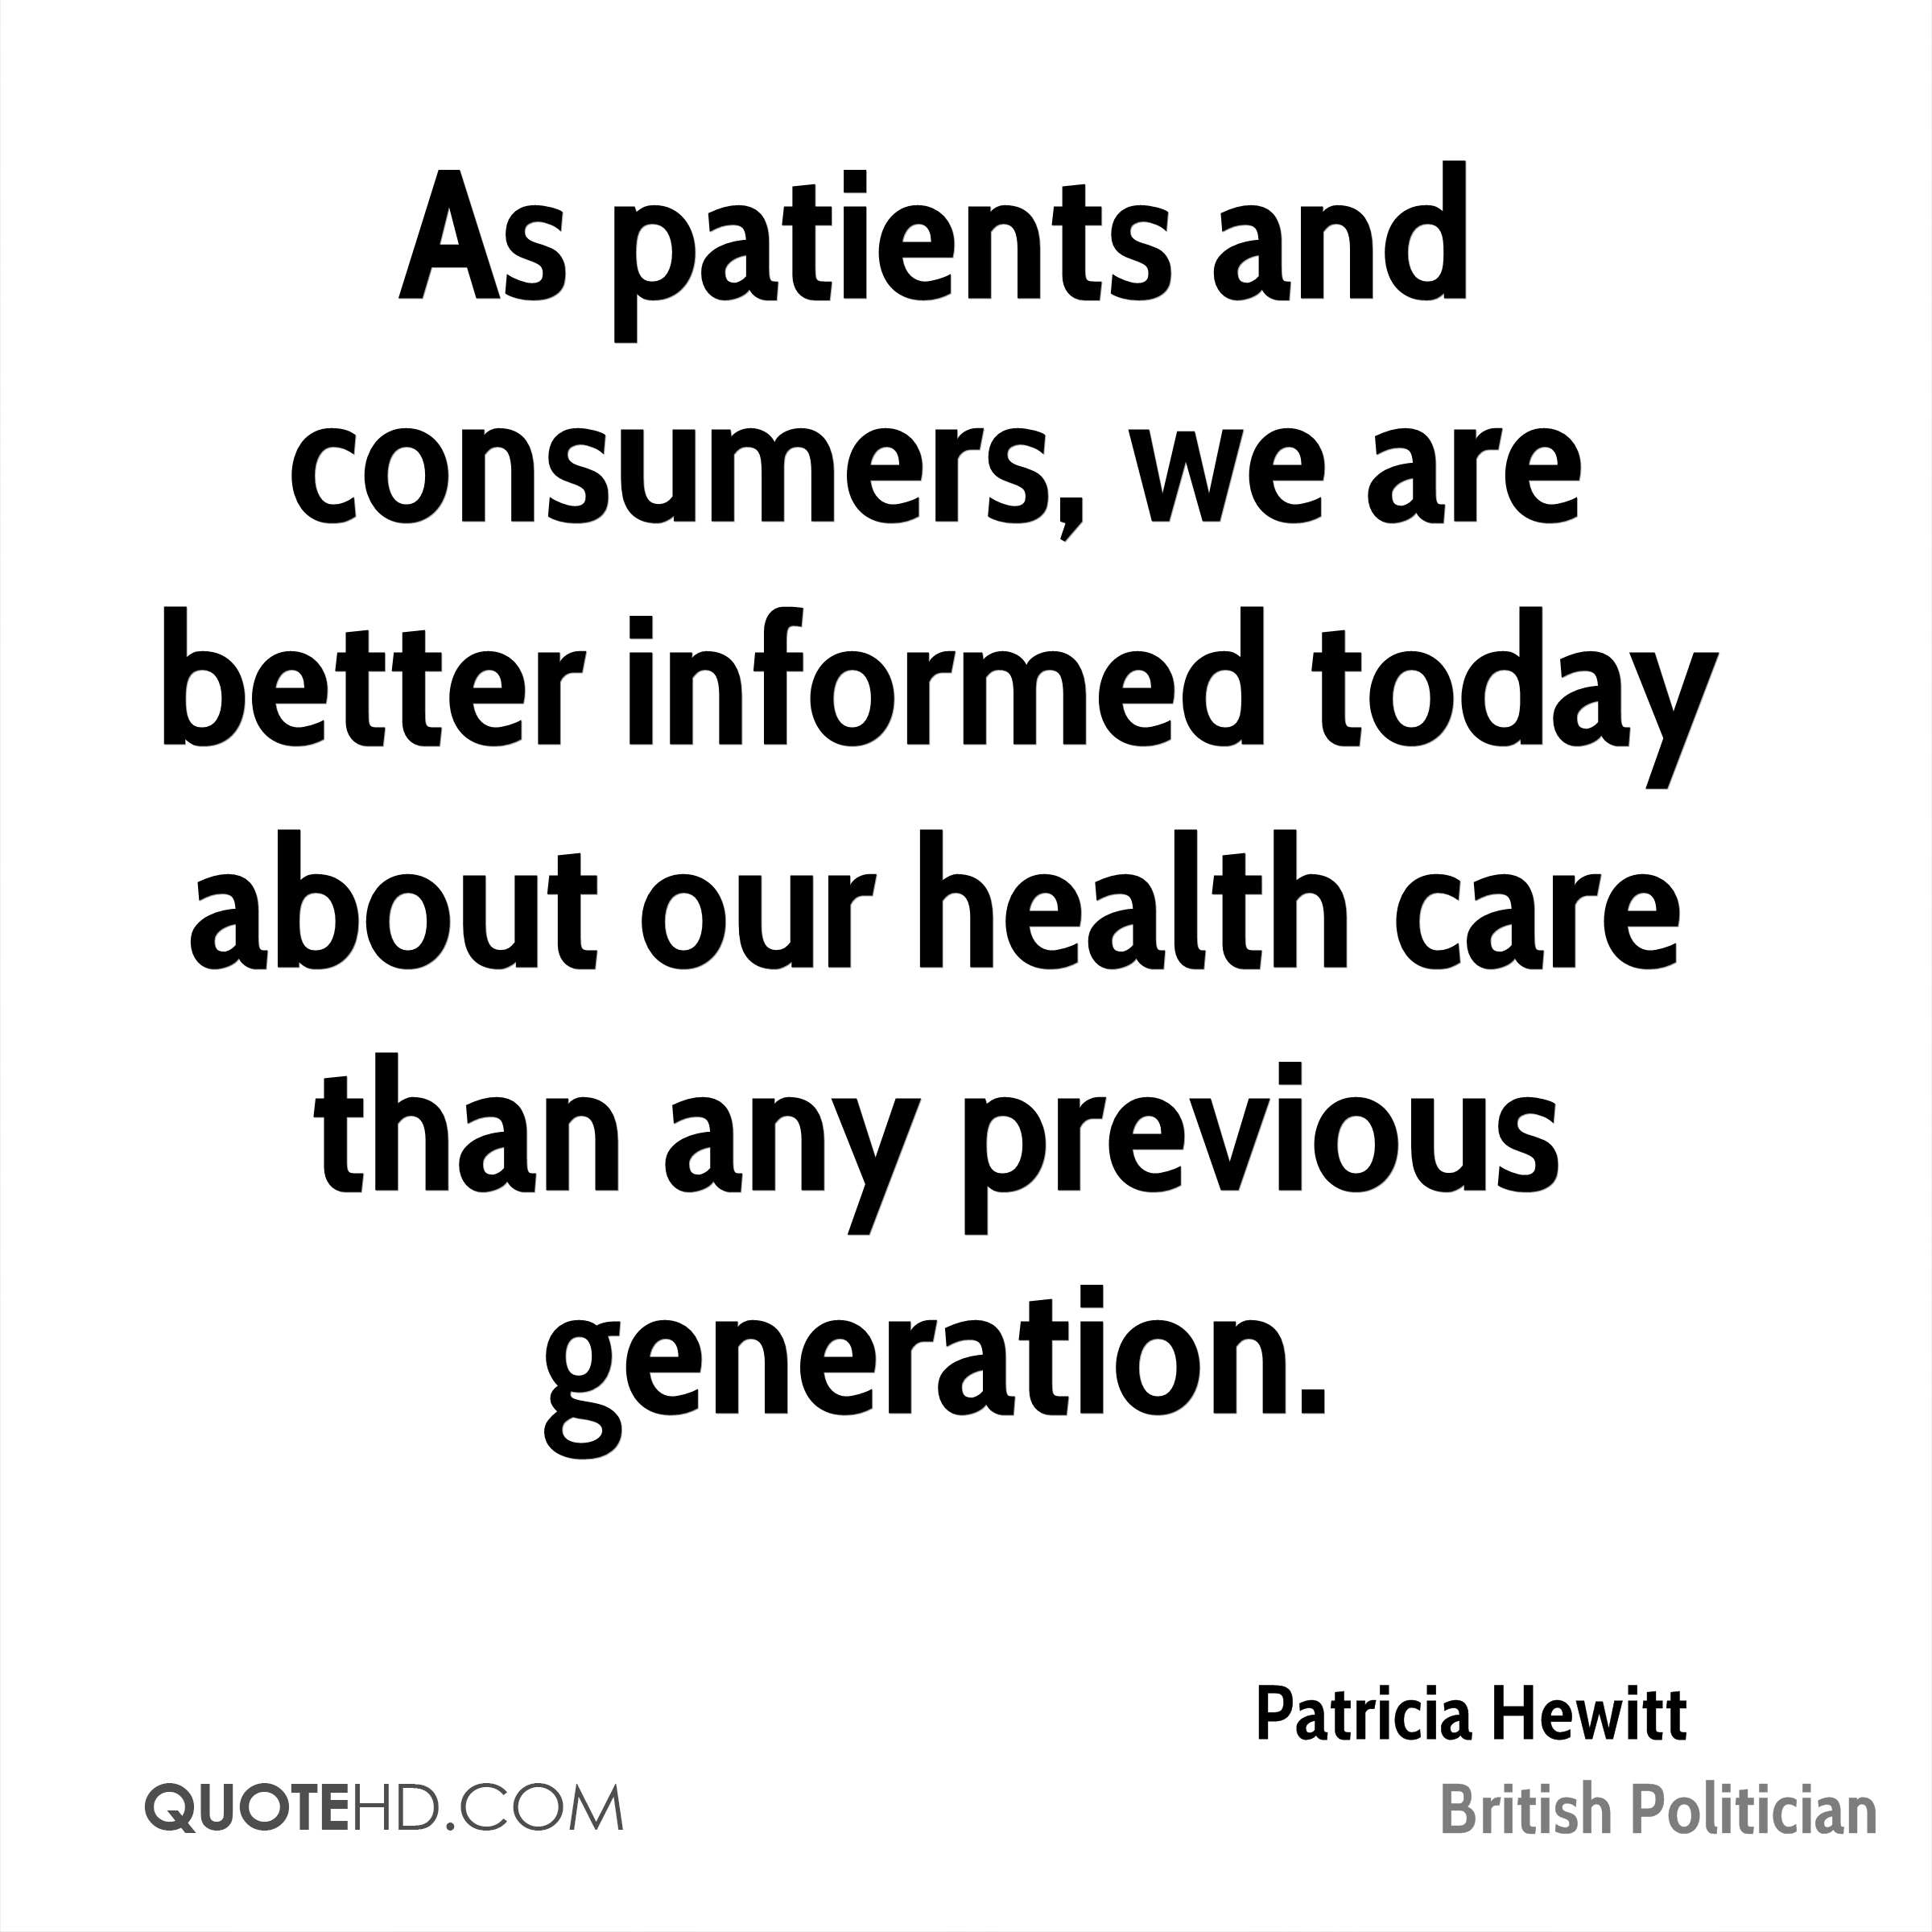 As patients and consumers, we are better informed today about our health care than any previous generation.